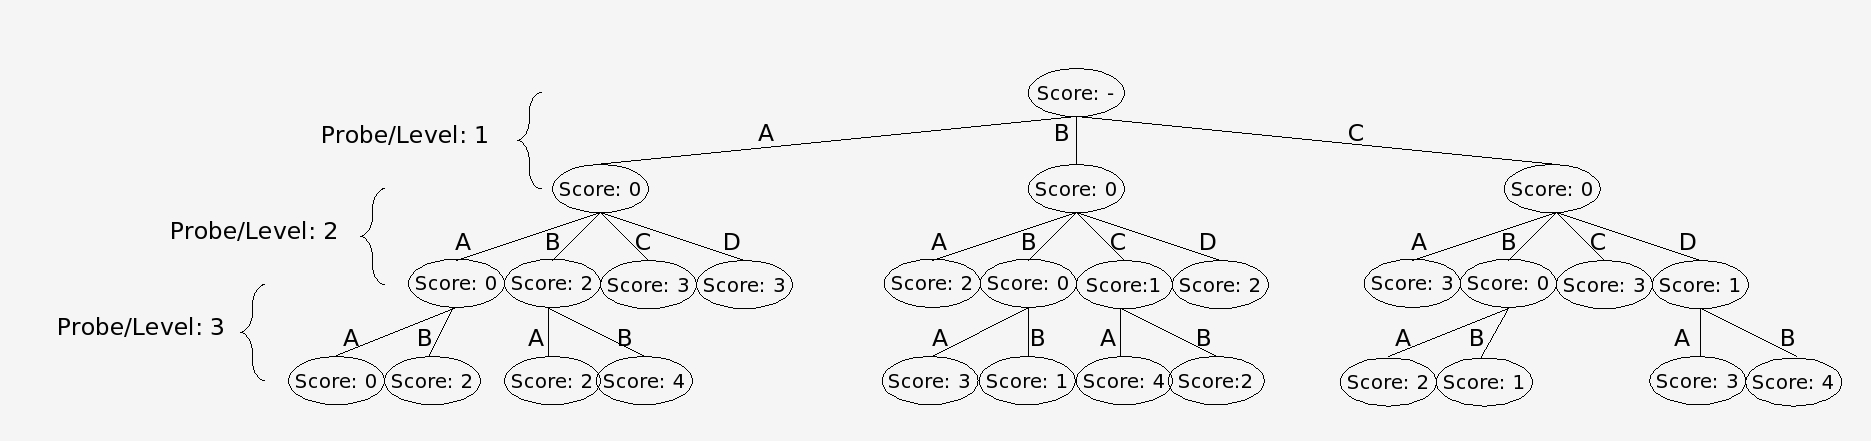 Nodes are trims via the branch and bound algorithm using the conflict matrix as input.